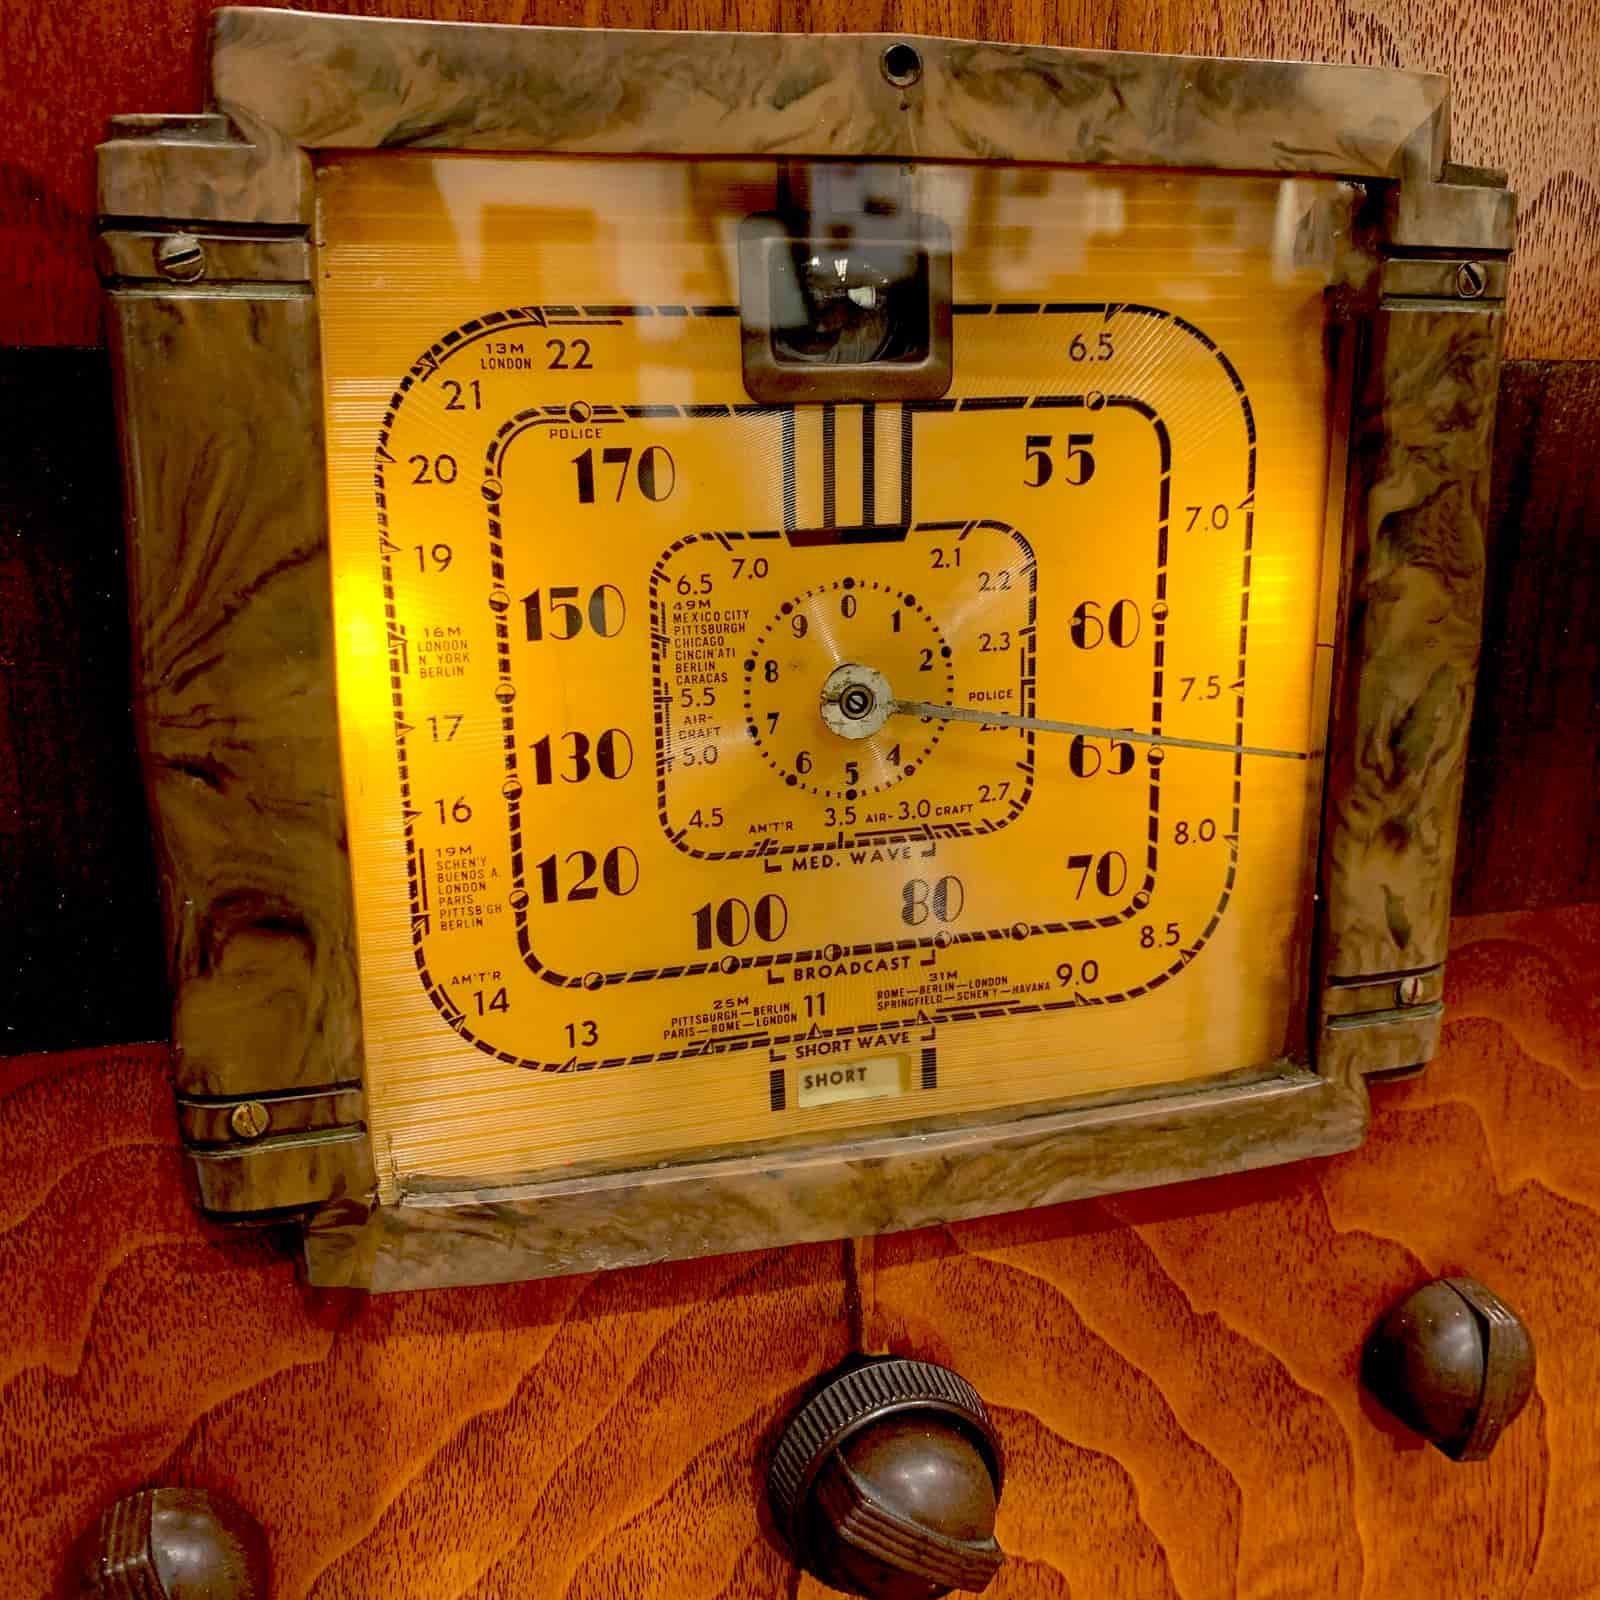 Up close view of dial of Rosie's Workshop Fada vintage floor radio with modern technology. We fitted the radio with a high-end Bluetooth 5 audio system.